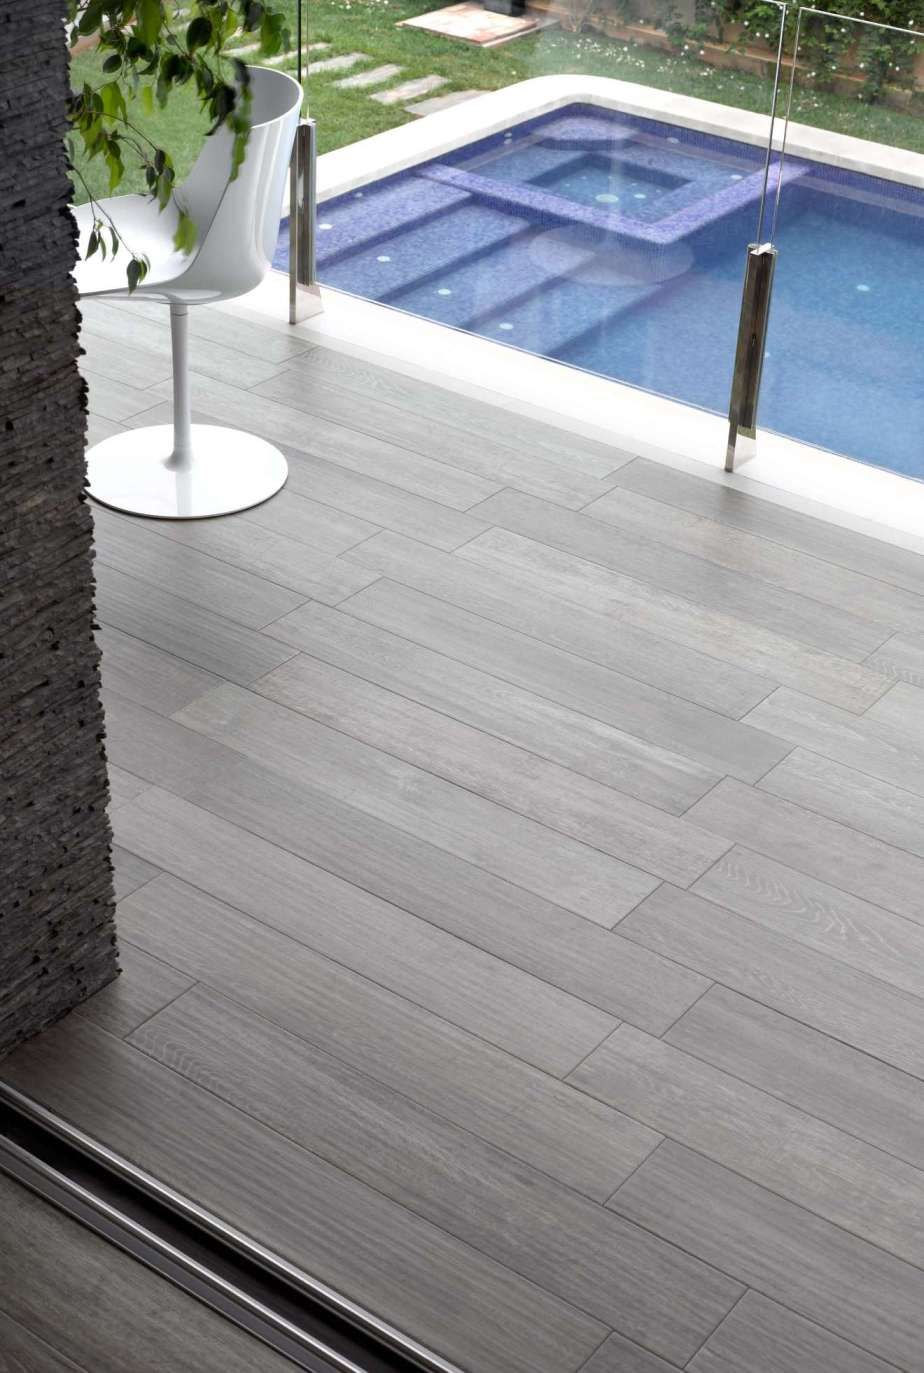 Timber Look Tiles Are A Great Way To Seamlessly Connect Indoors Outdoors Visit Tile Junket 2a Gordon Avenue Geelong West 3218 For S Best Range